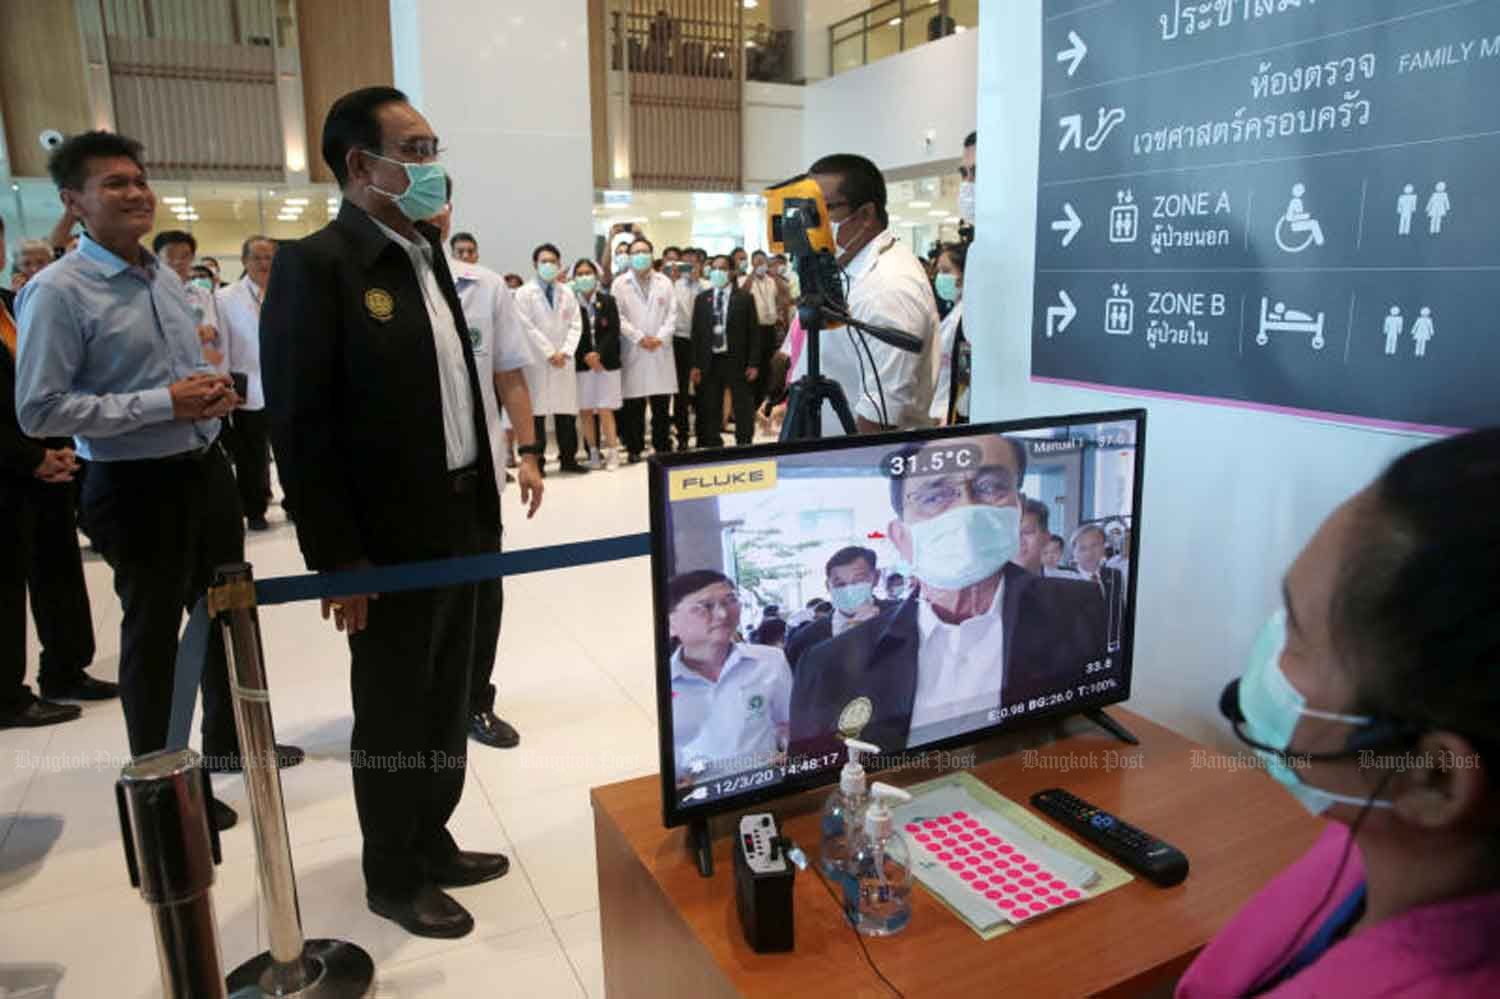 Prime Minister Prayut Chan-o-cha, wearing a mask, stands for a thermal scan at Rajavithi Hospital. The premier visited the hospital on Thursday to inspect the health screening process and to give the medical staff some moral support. (Photo: Chanat Katanyu)